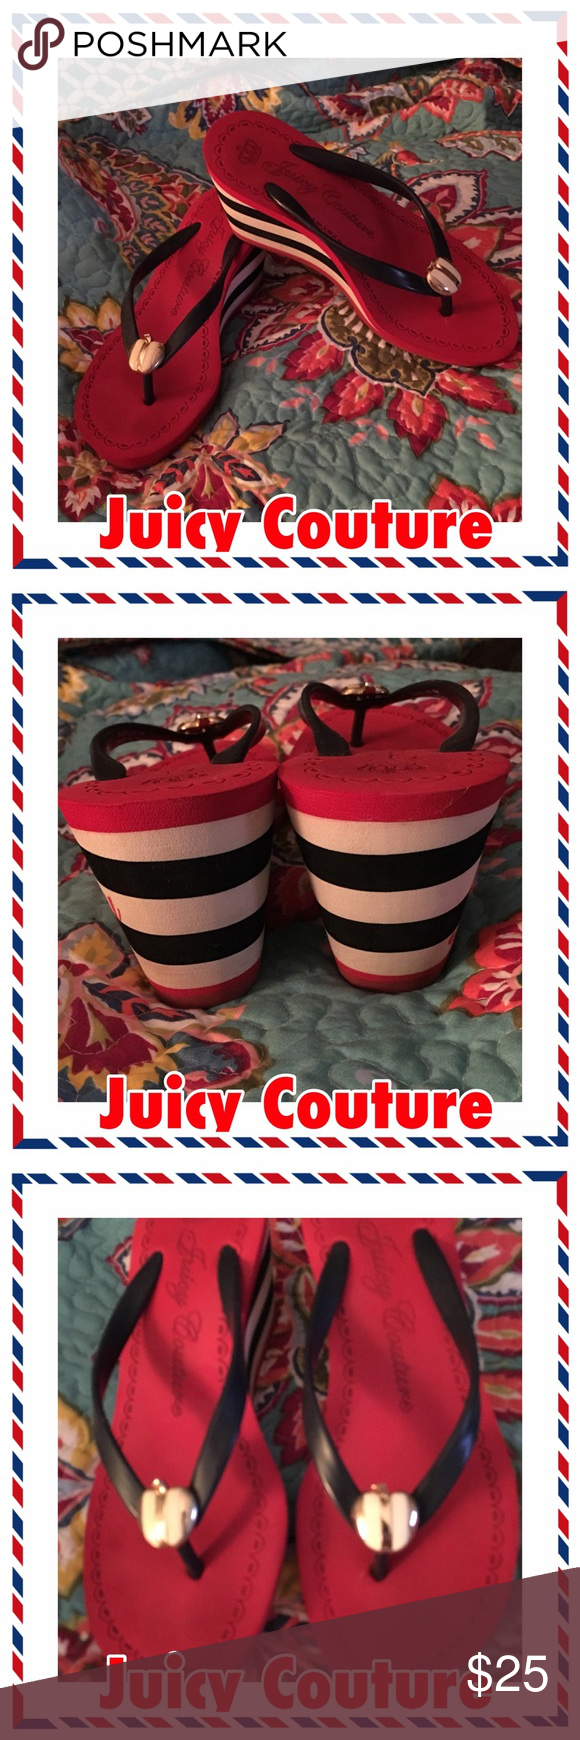 Juicy Couture Red, Wht & Navy Wedges w/ Apple  July 4th with soon be here.  You would be stylin' in these adorable Juicy Couture Wedge flip-flops.  Perfect for that night out or just having fun at home with friends and having a bbq.  Look New!!!!!! Juicy Couture Shoes Wedges